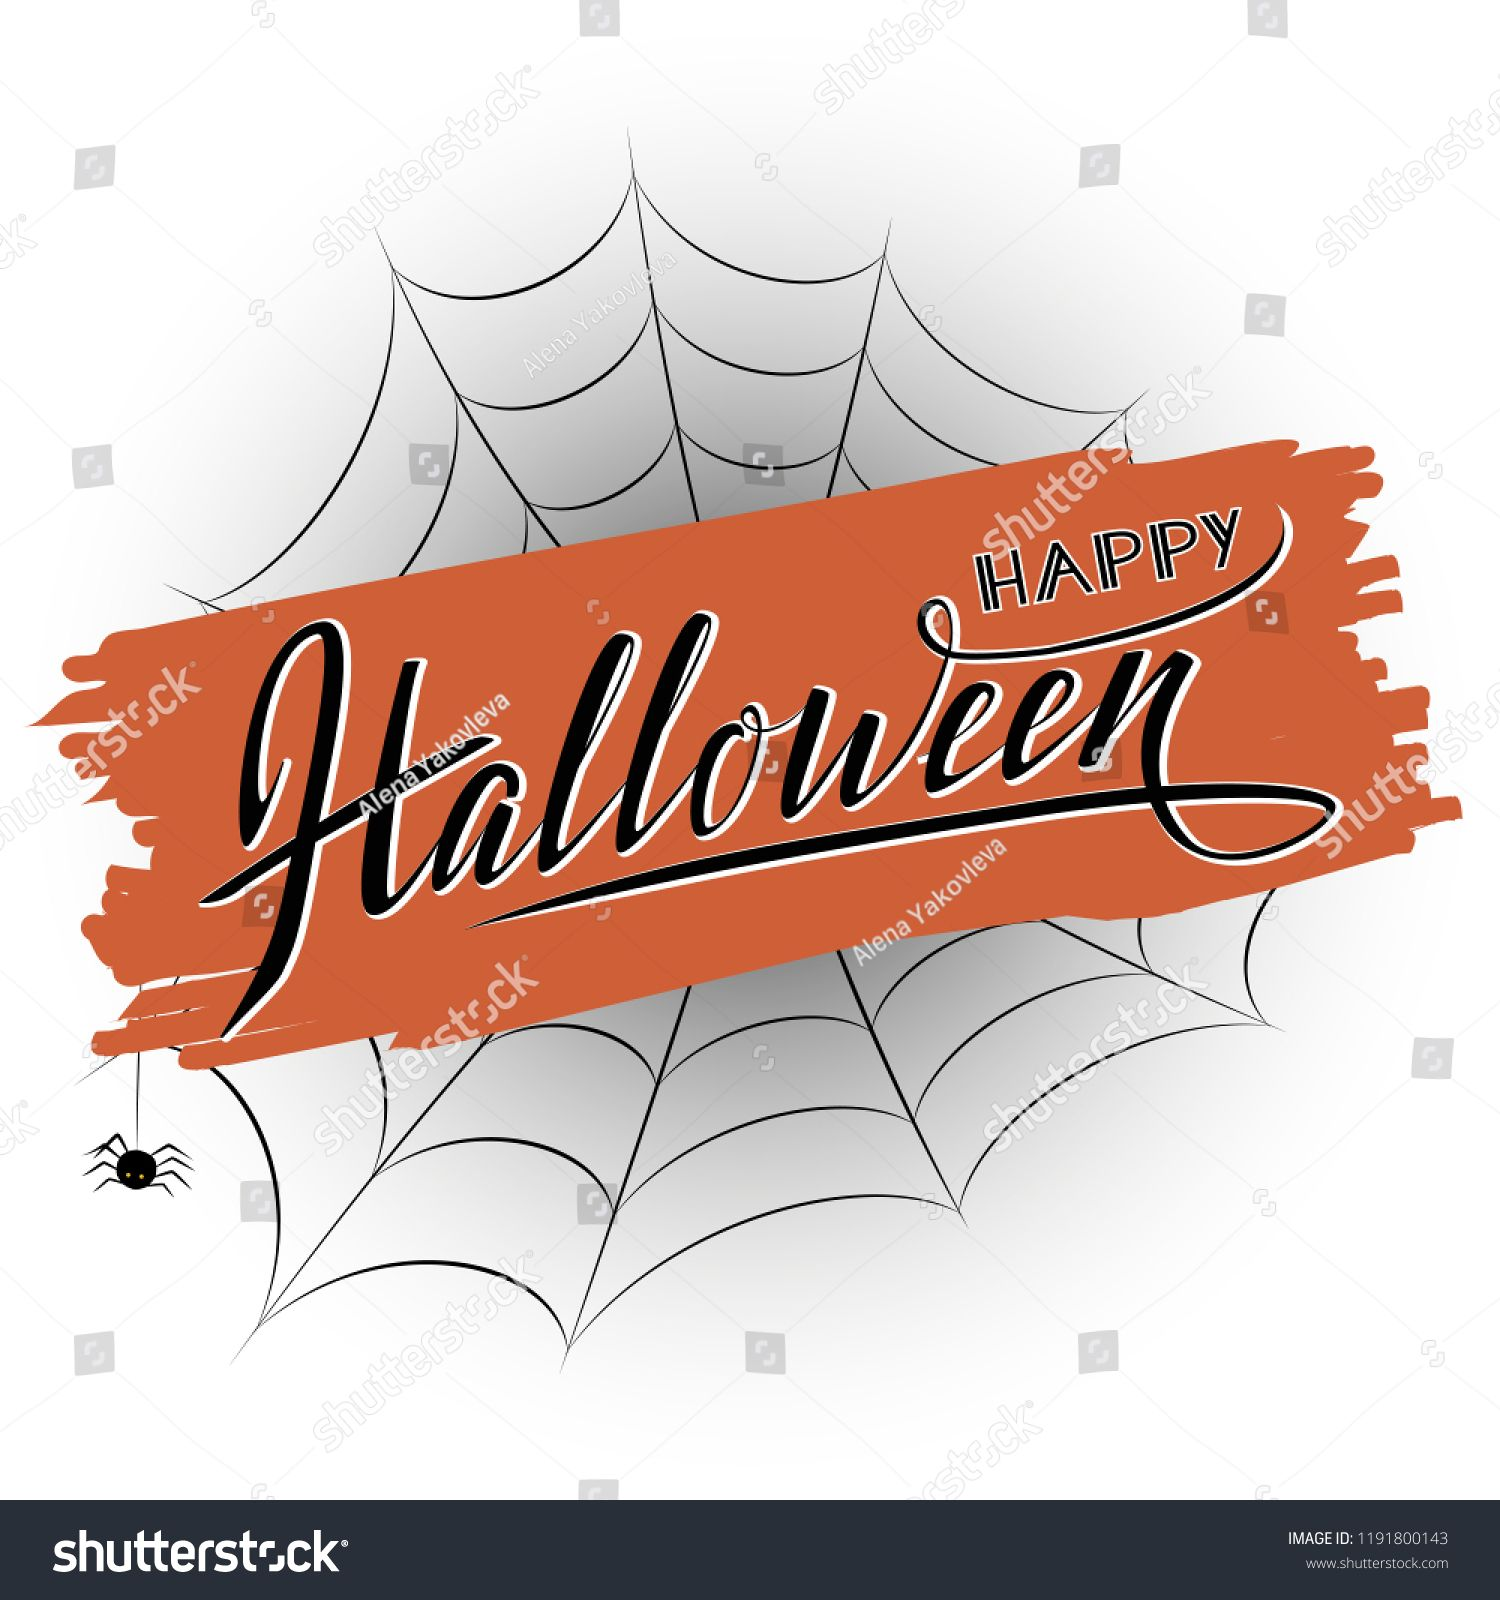 Happy halloween hand sketched vector lettering. Orange